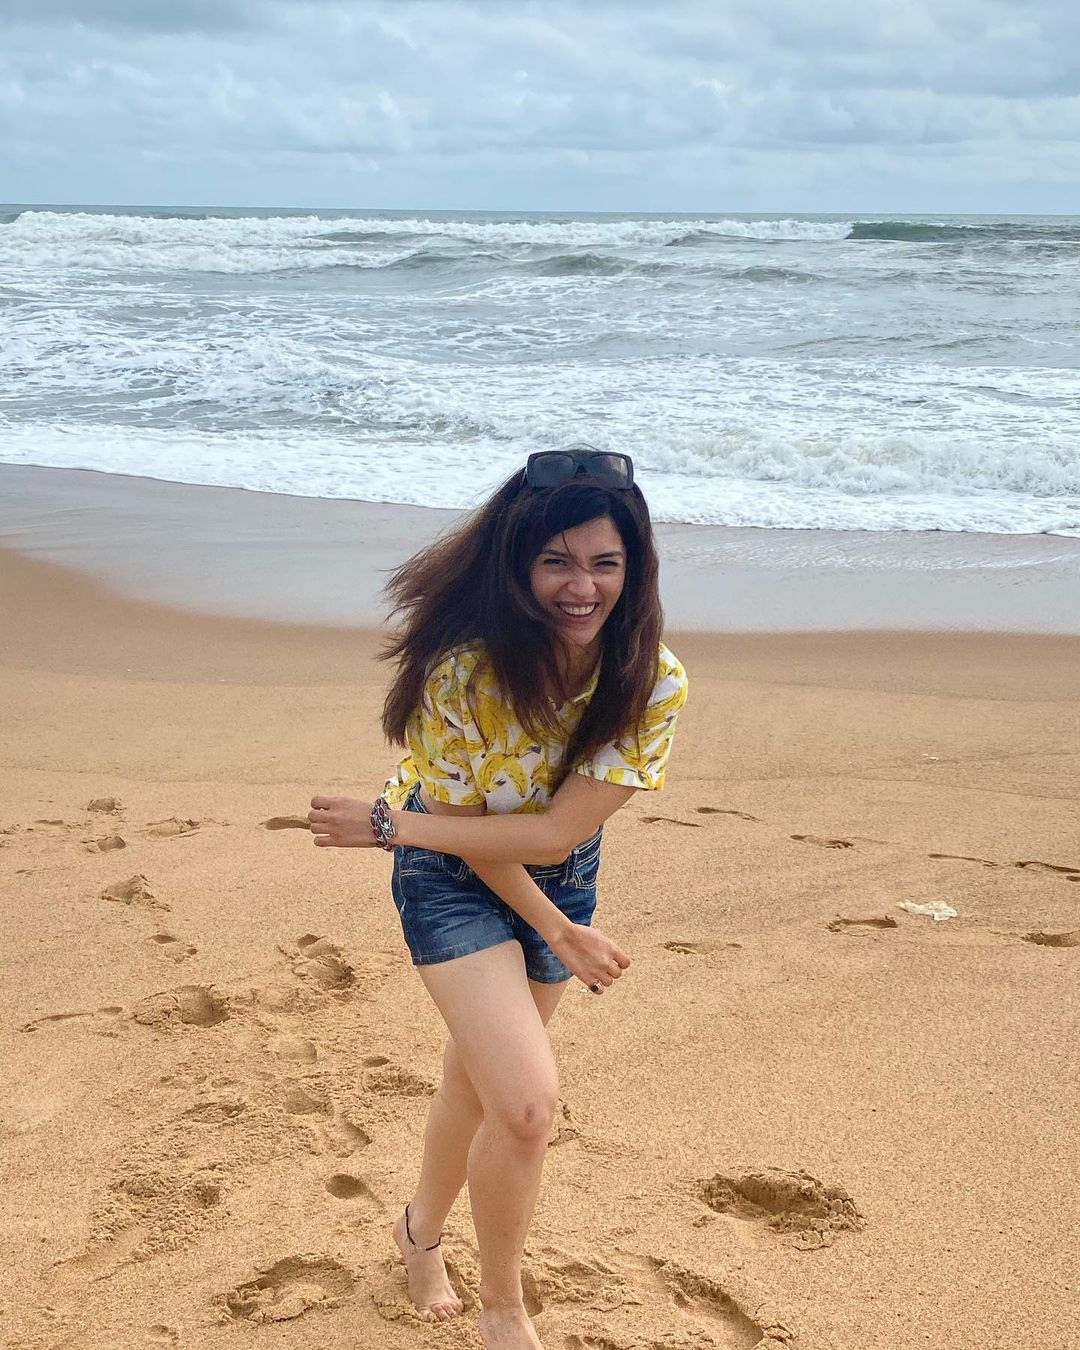 Mehrene Pirzada Hot Images and sexy stills